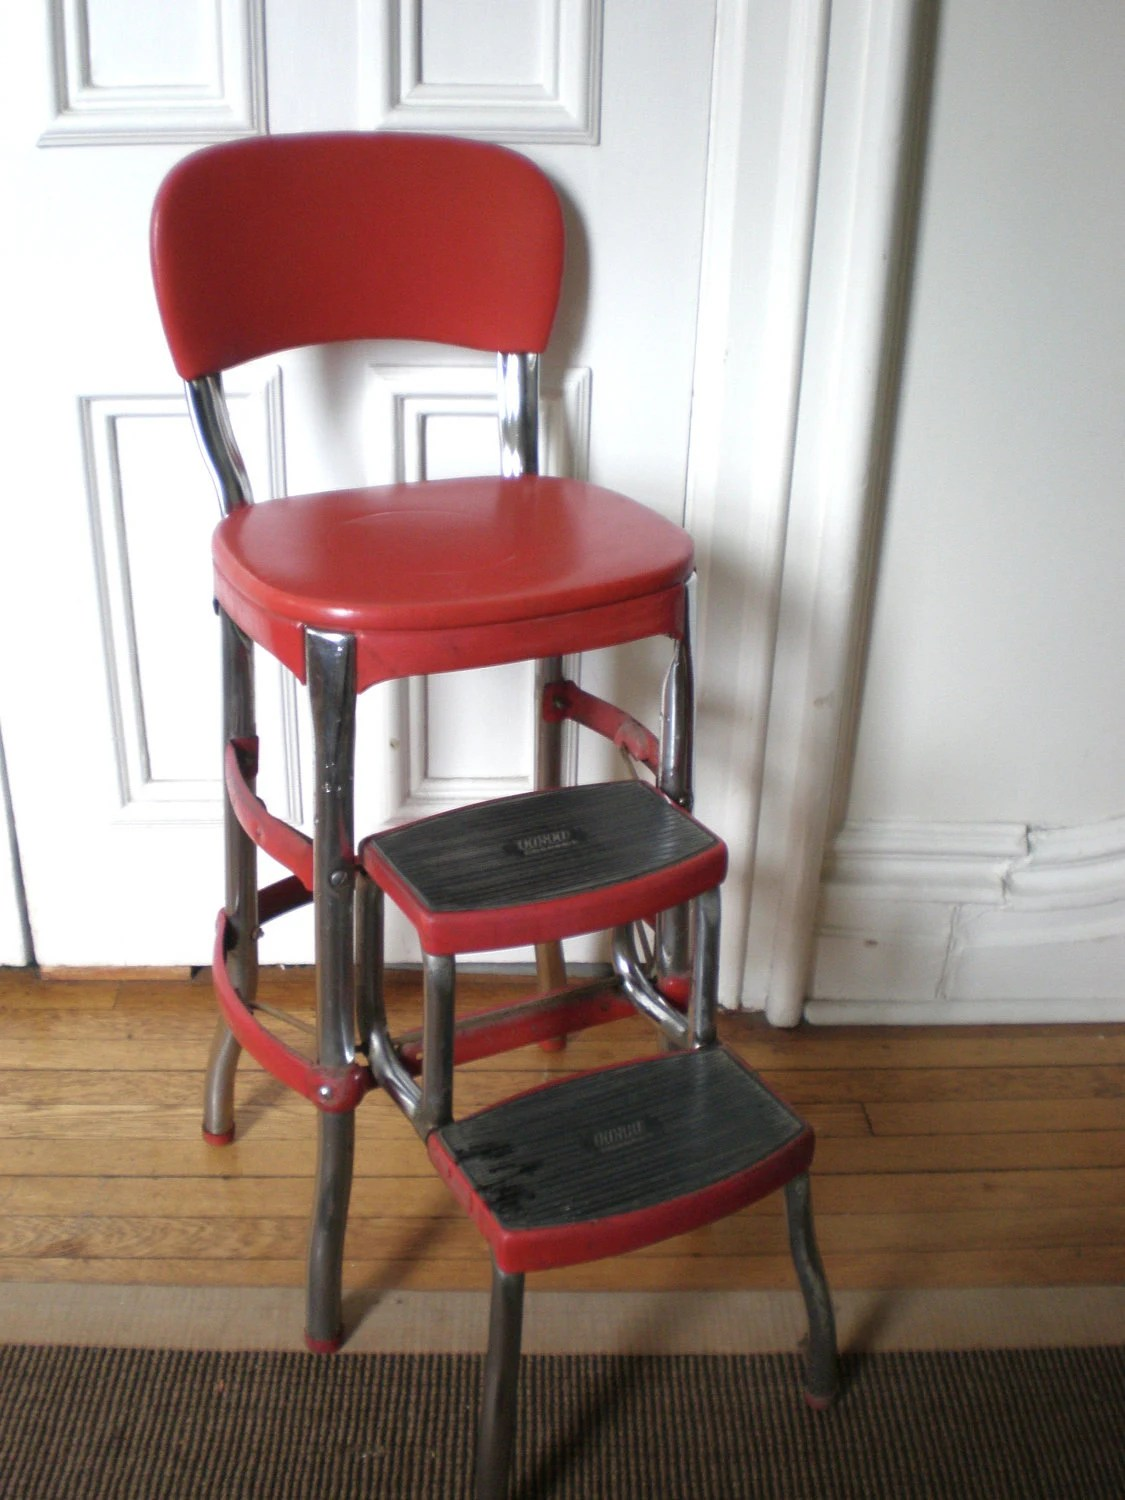 vintage cosco step stool chair dinette chairs with arms red kitchen